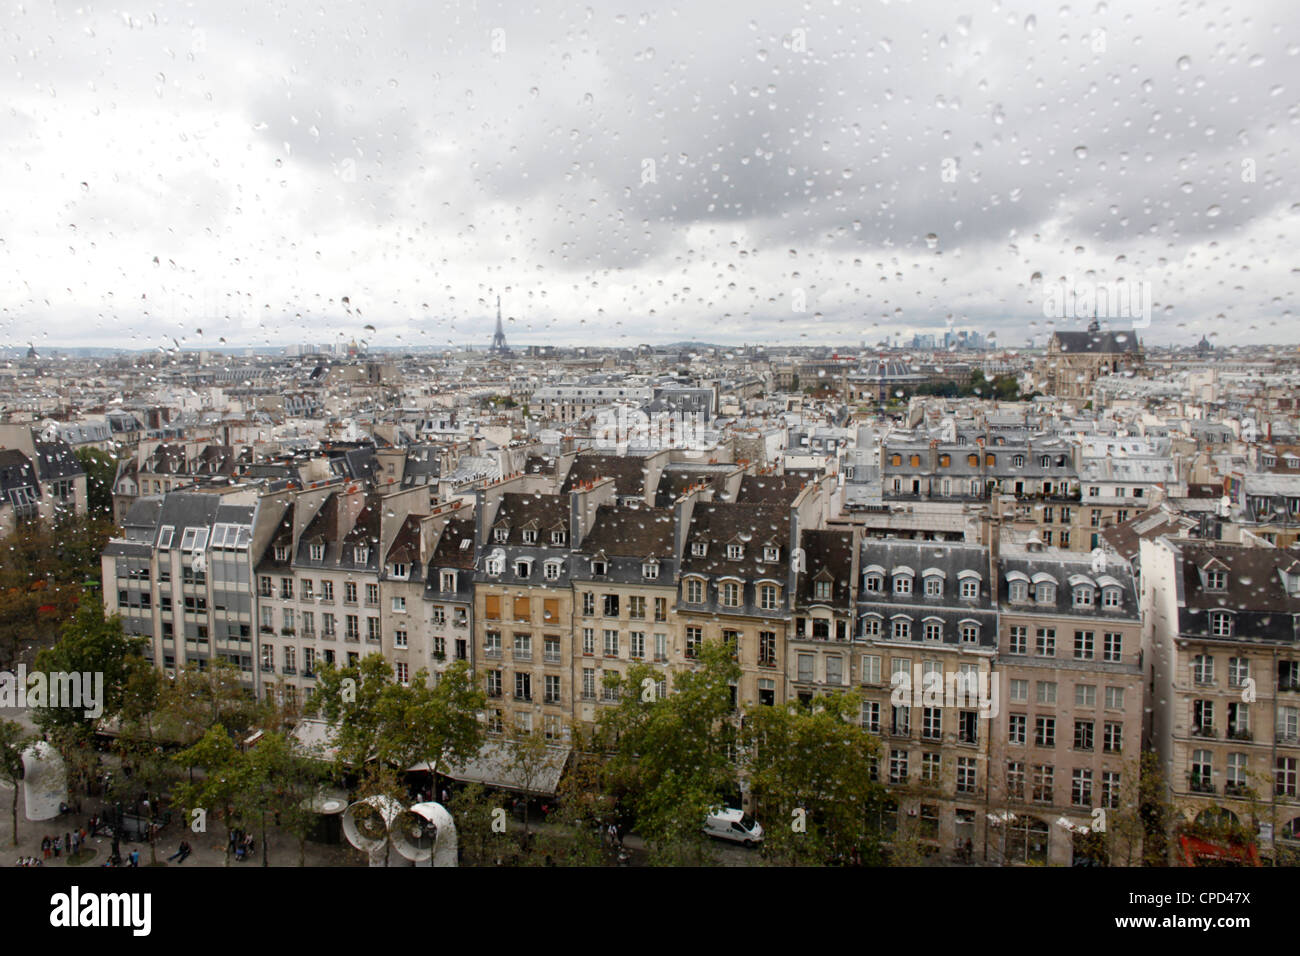 View from the Pompidou Centre on a rainy day, Paris, France, Europe - Stock Image